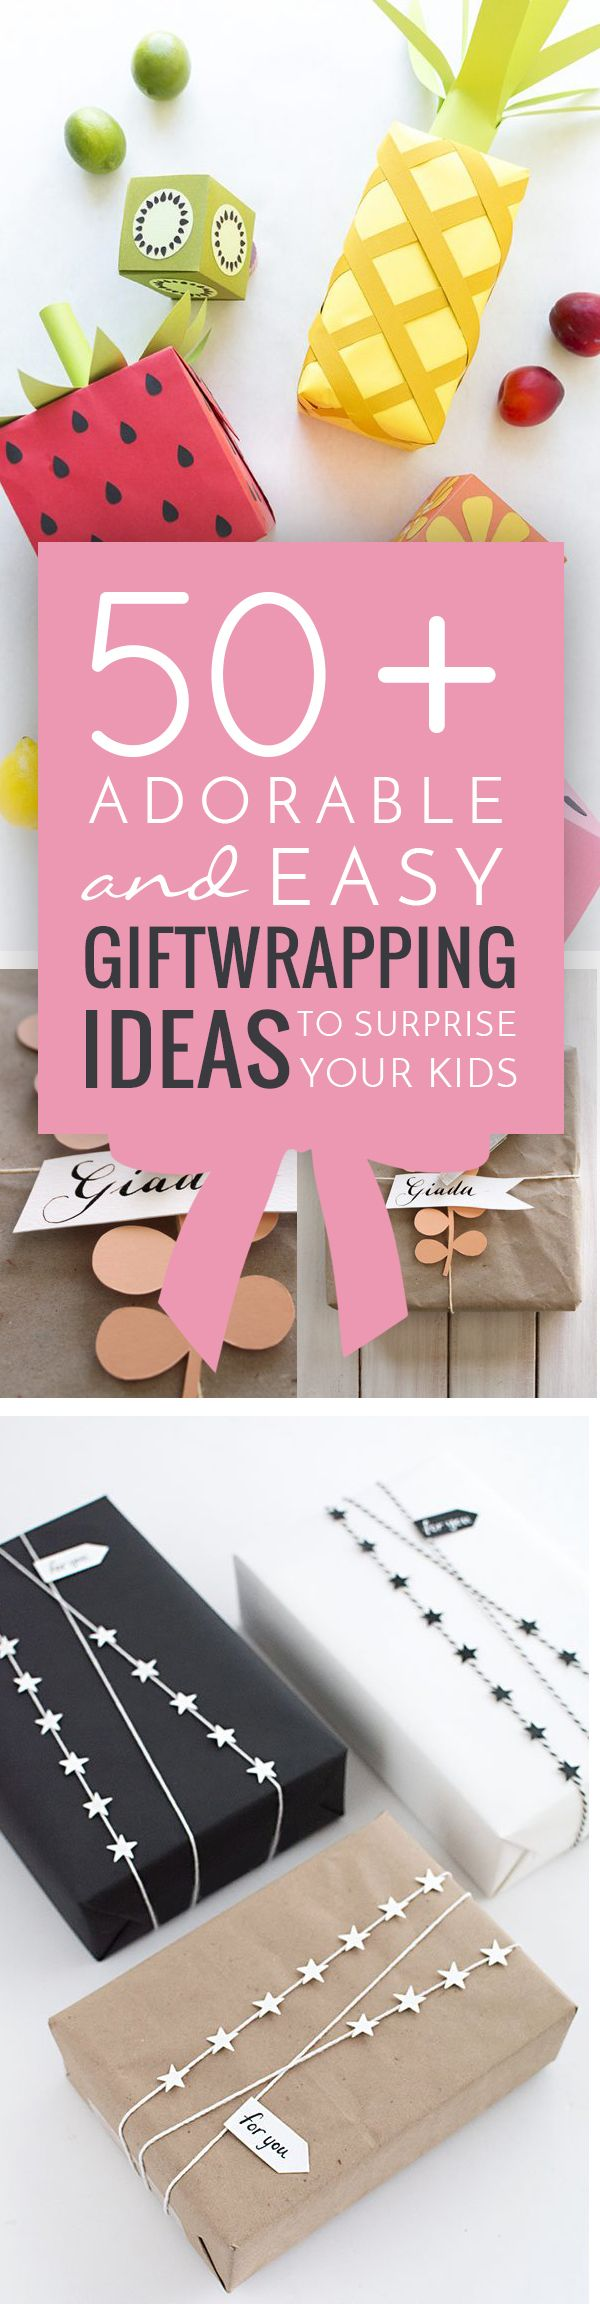 Best 25+ Creative gift wrapping ideas on Pinterest | Creative ...